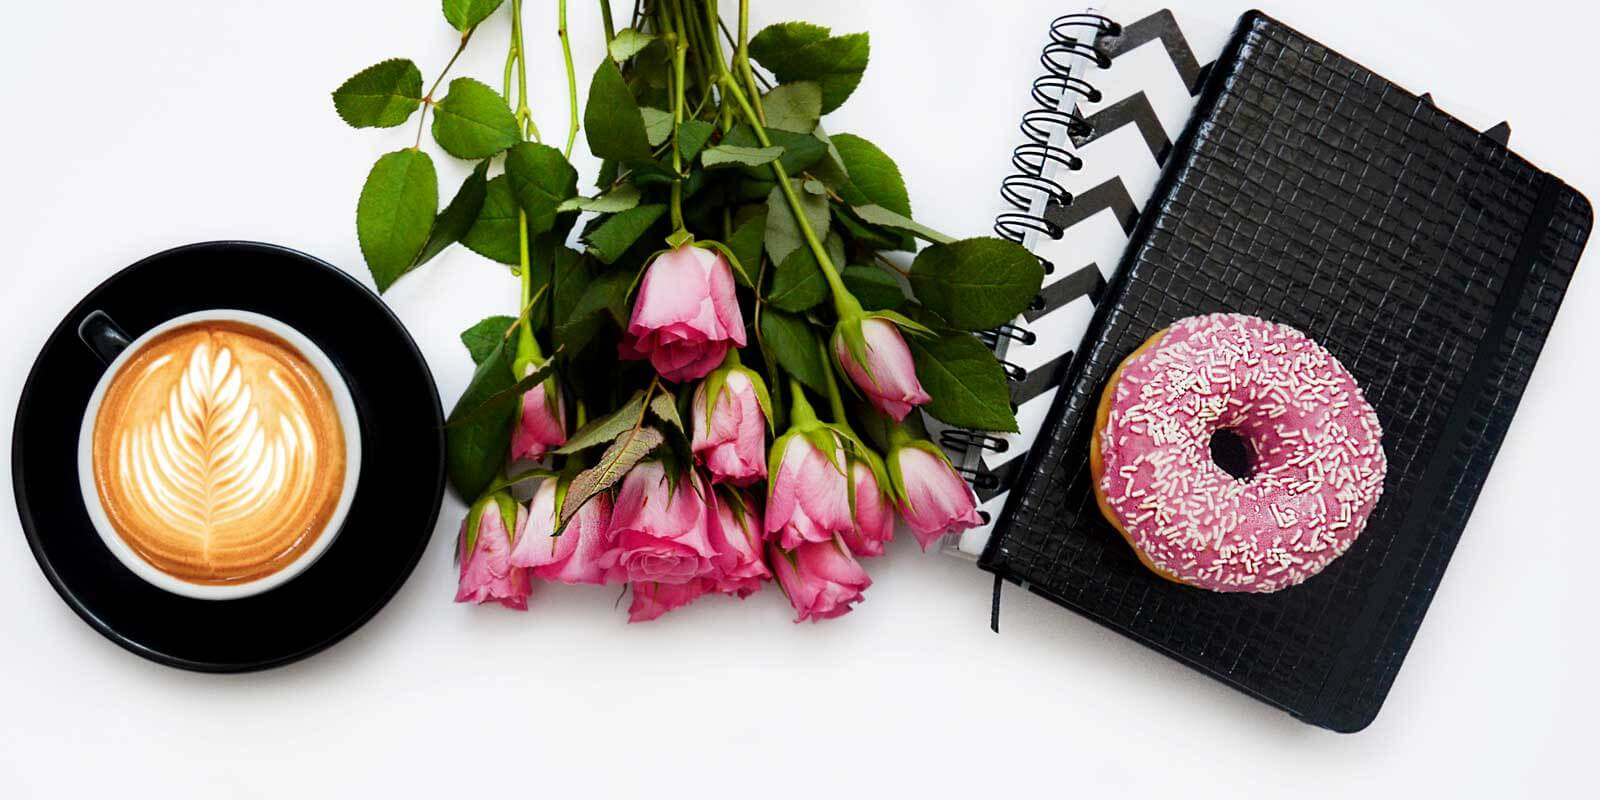 Flat lay photograph with a latte in a cup and saucer, a bunch of pink roses, 2 black and white printed journals, and a pink frosted donut with white sprinkles